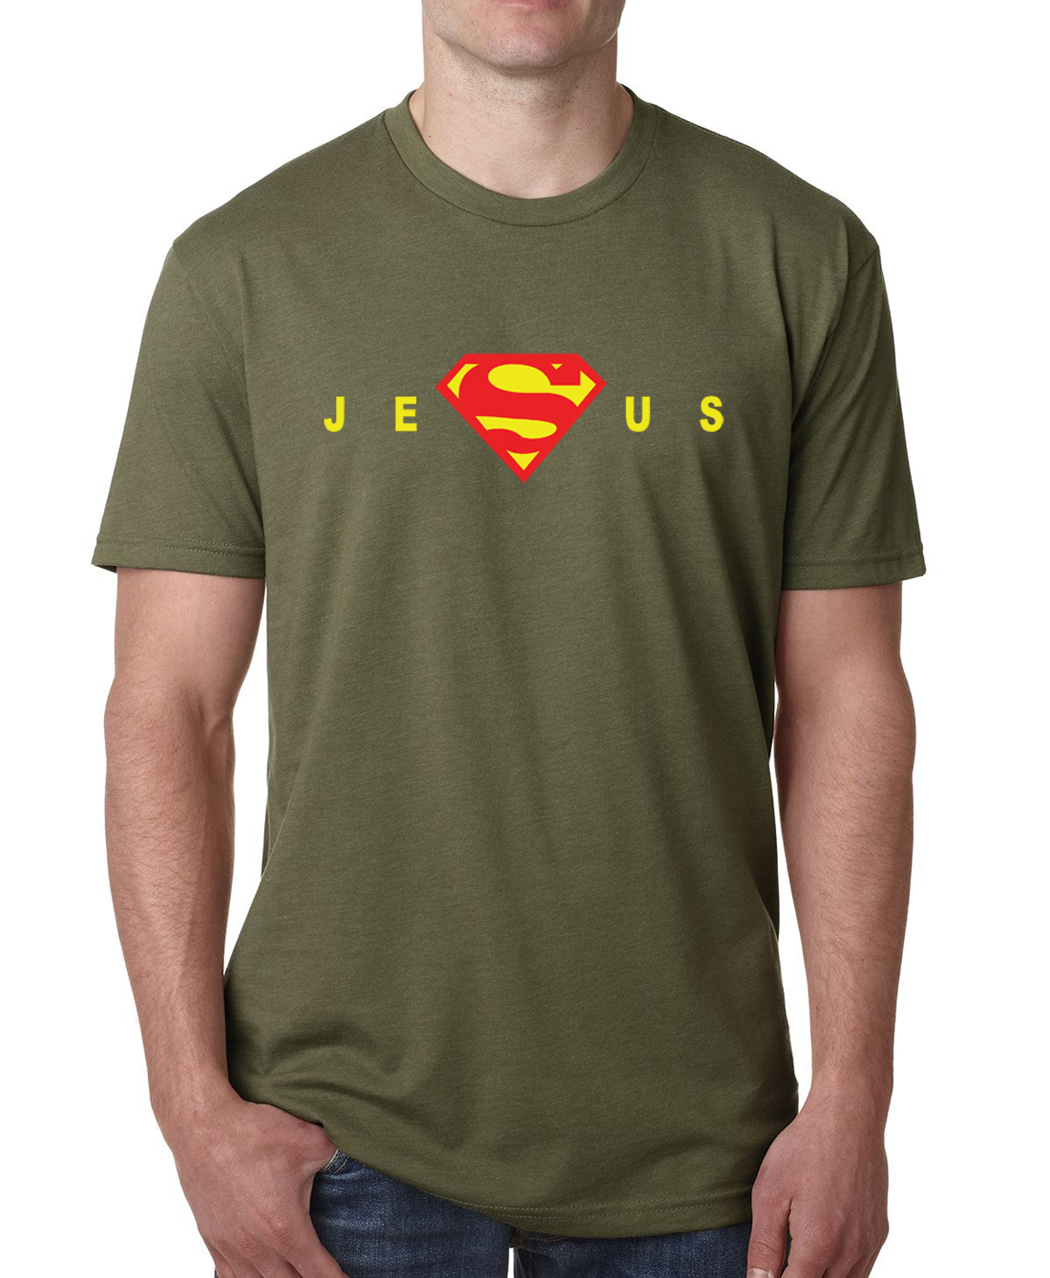 Jesus t shirt men 2019 summer short sleeve o-neck tee Shirt homme funny harajuku brand clothing fitness top hip-hop top